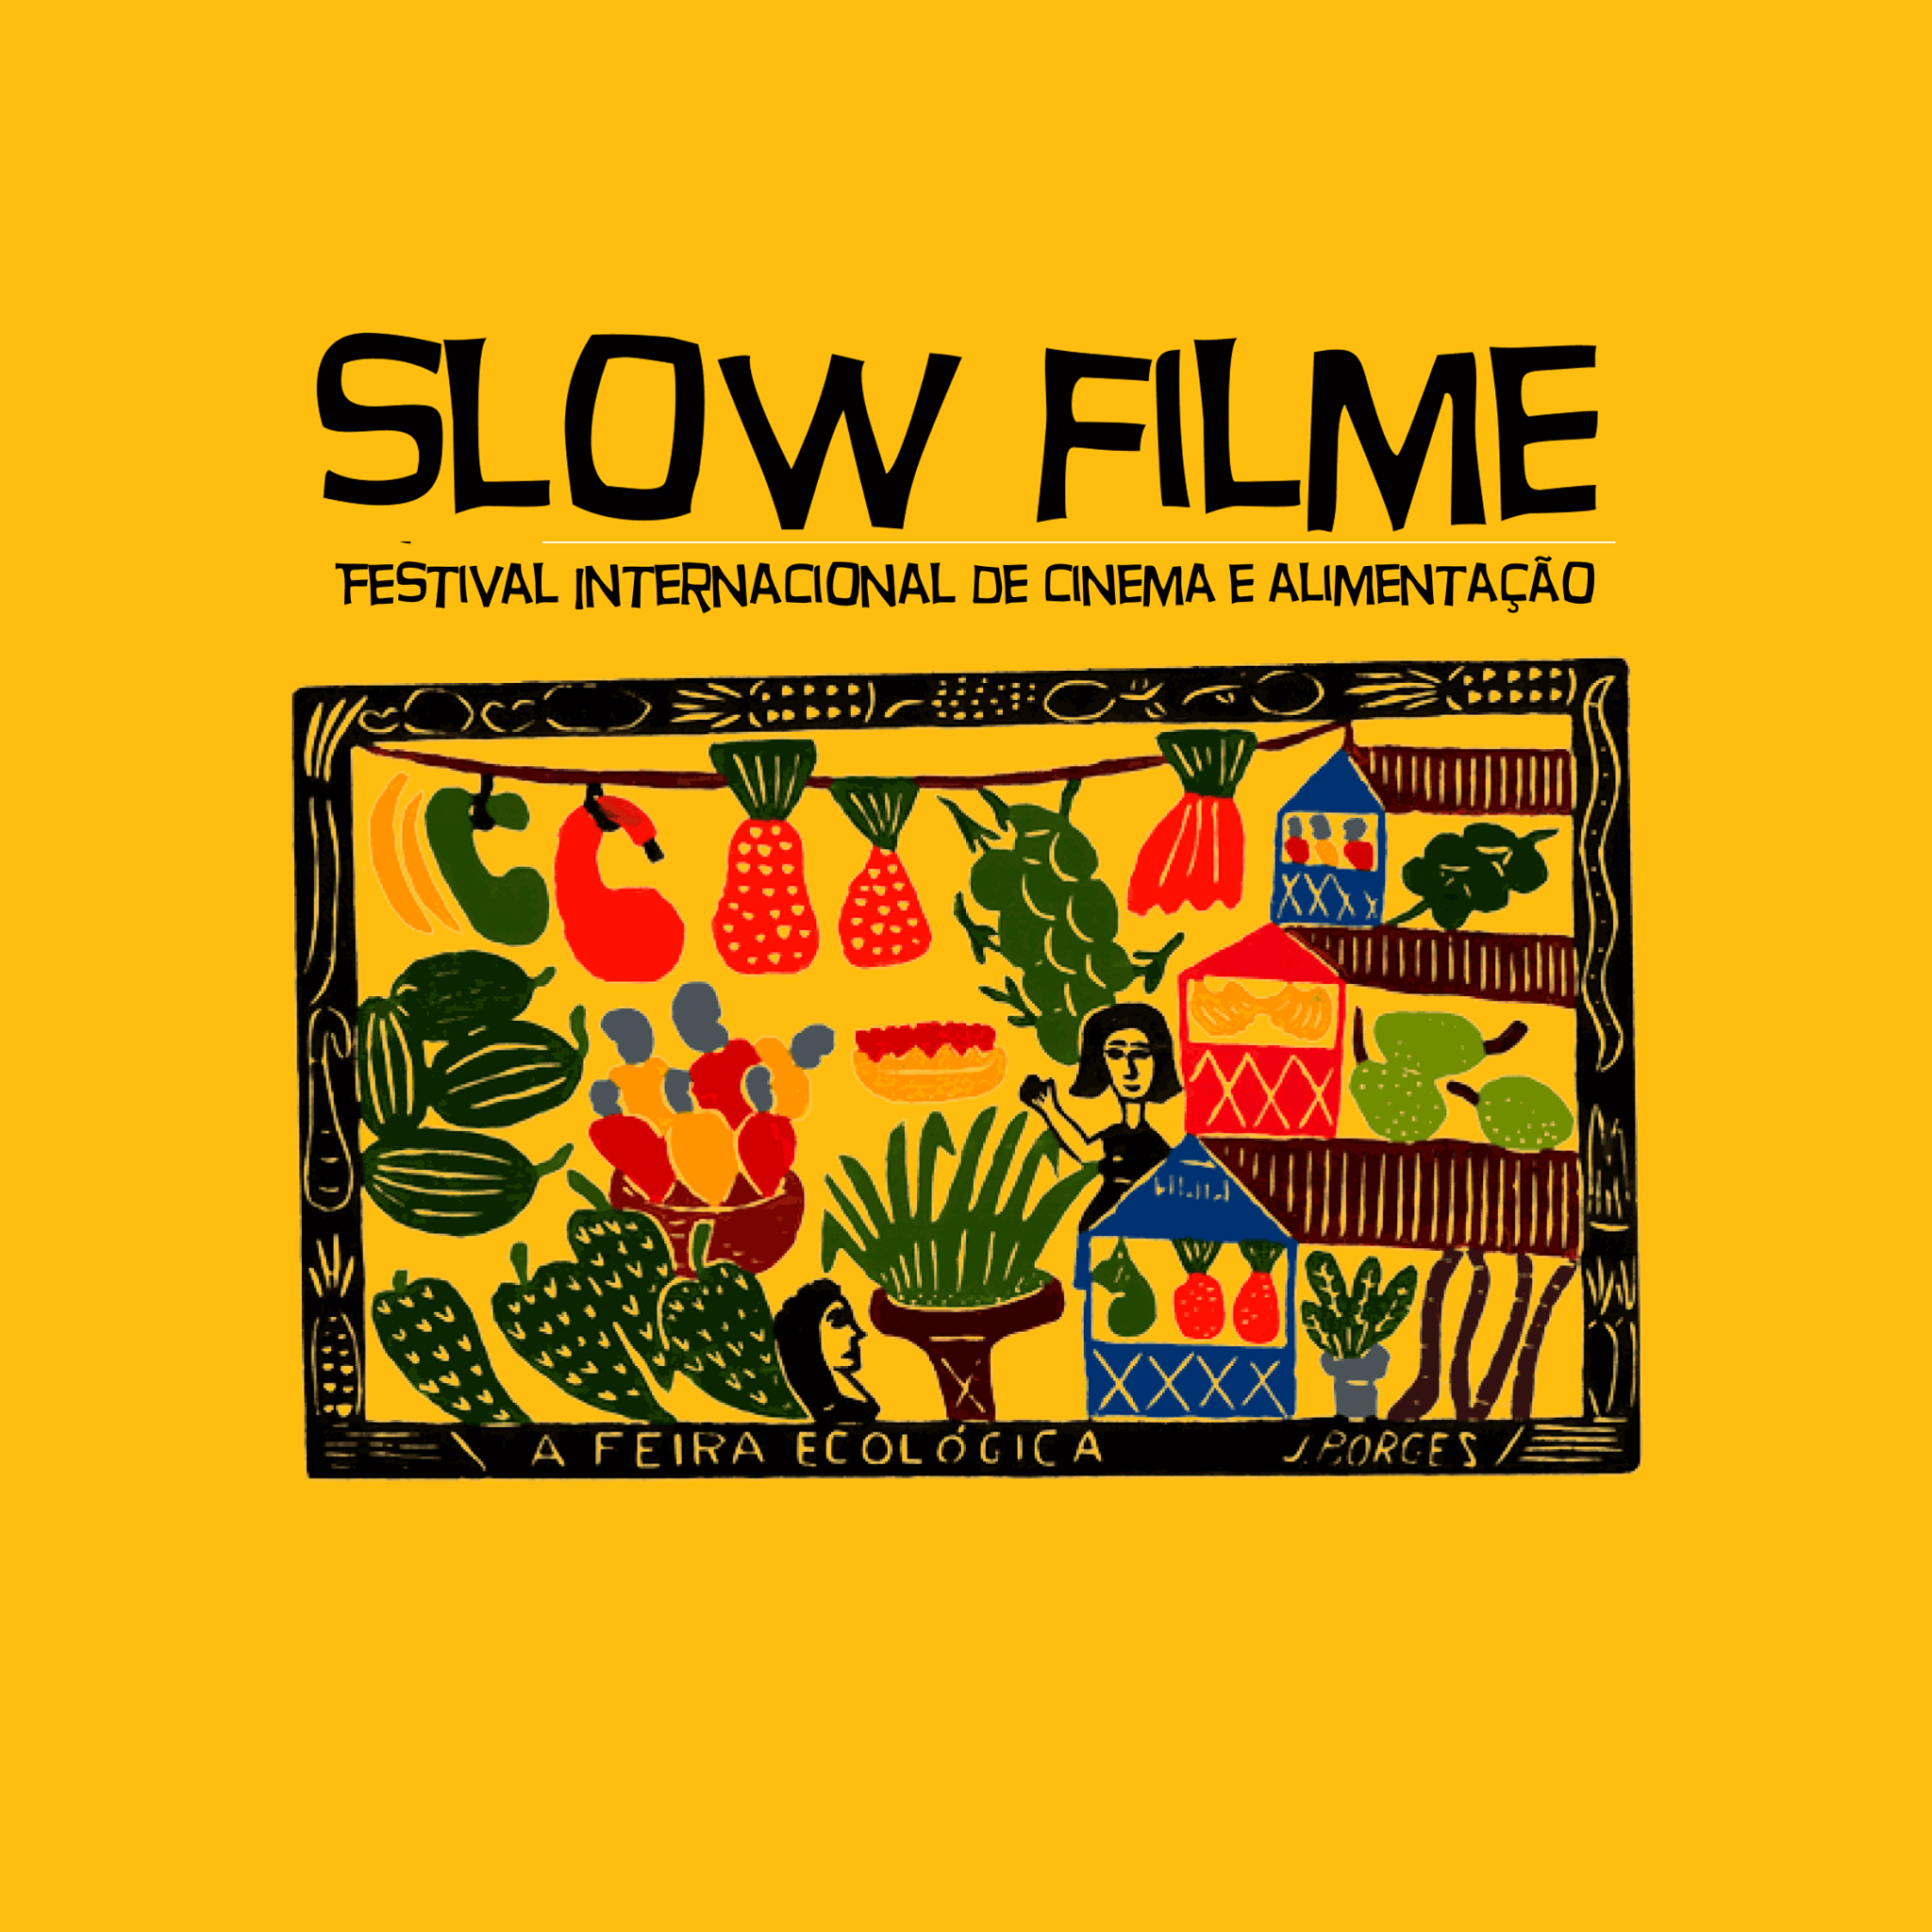 Gunga no 5º SLOW FILME